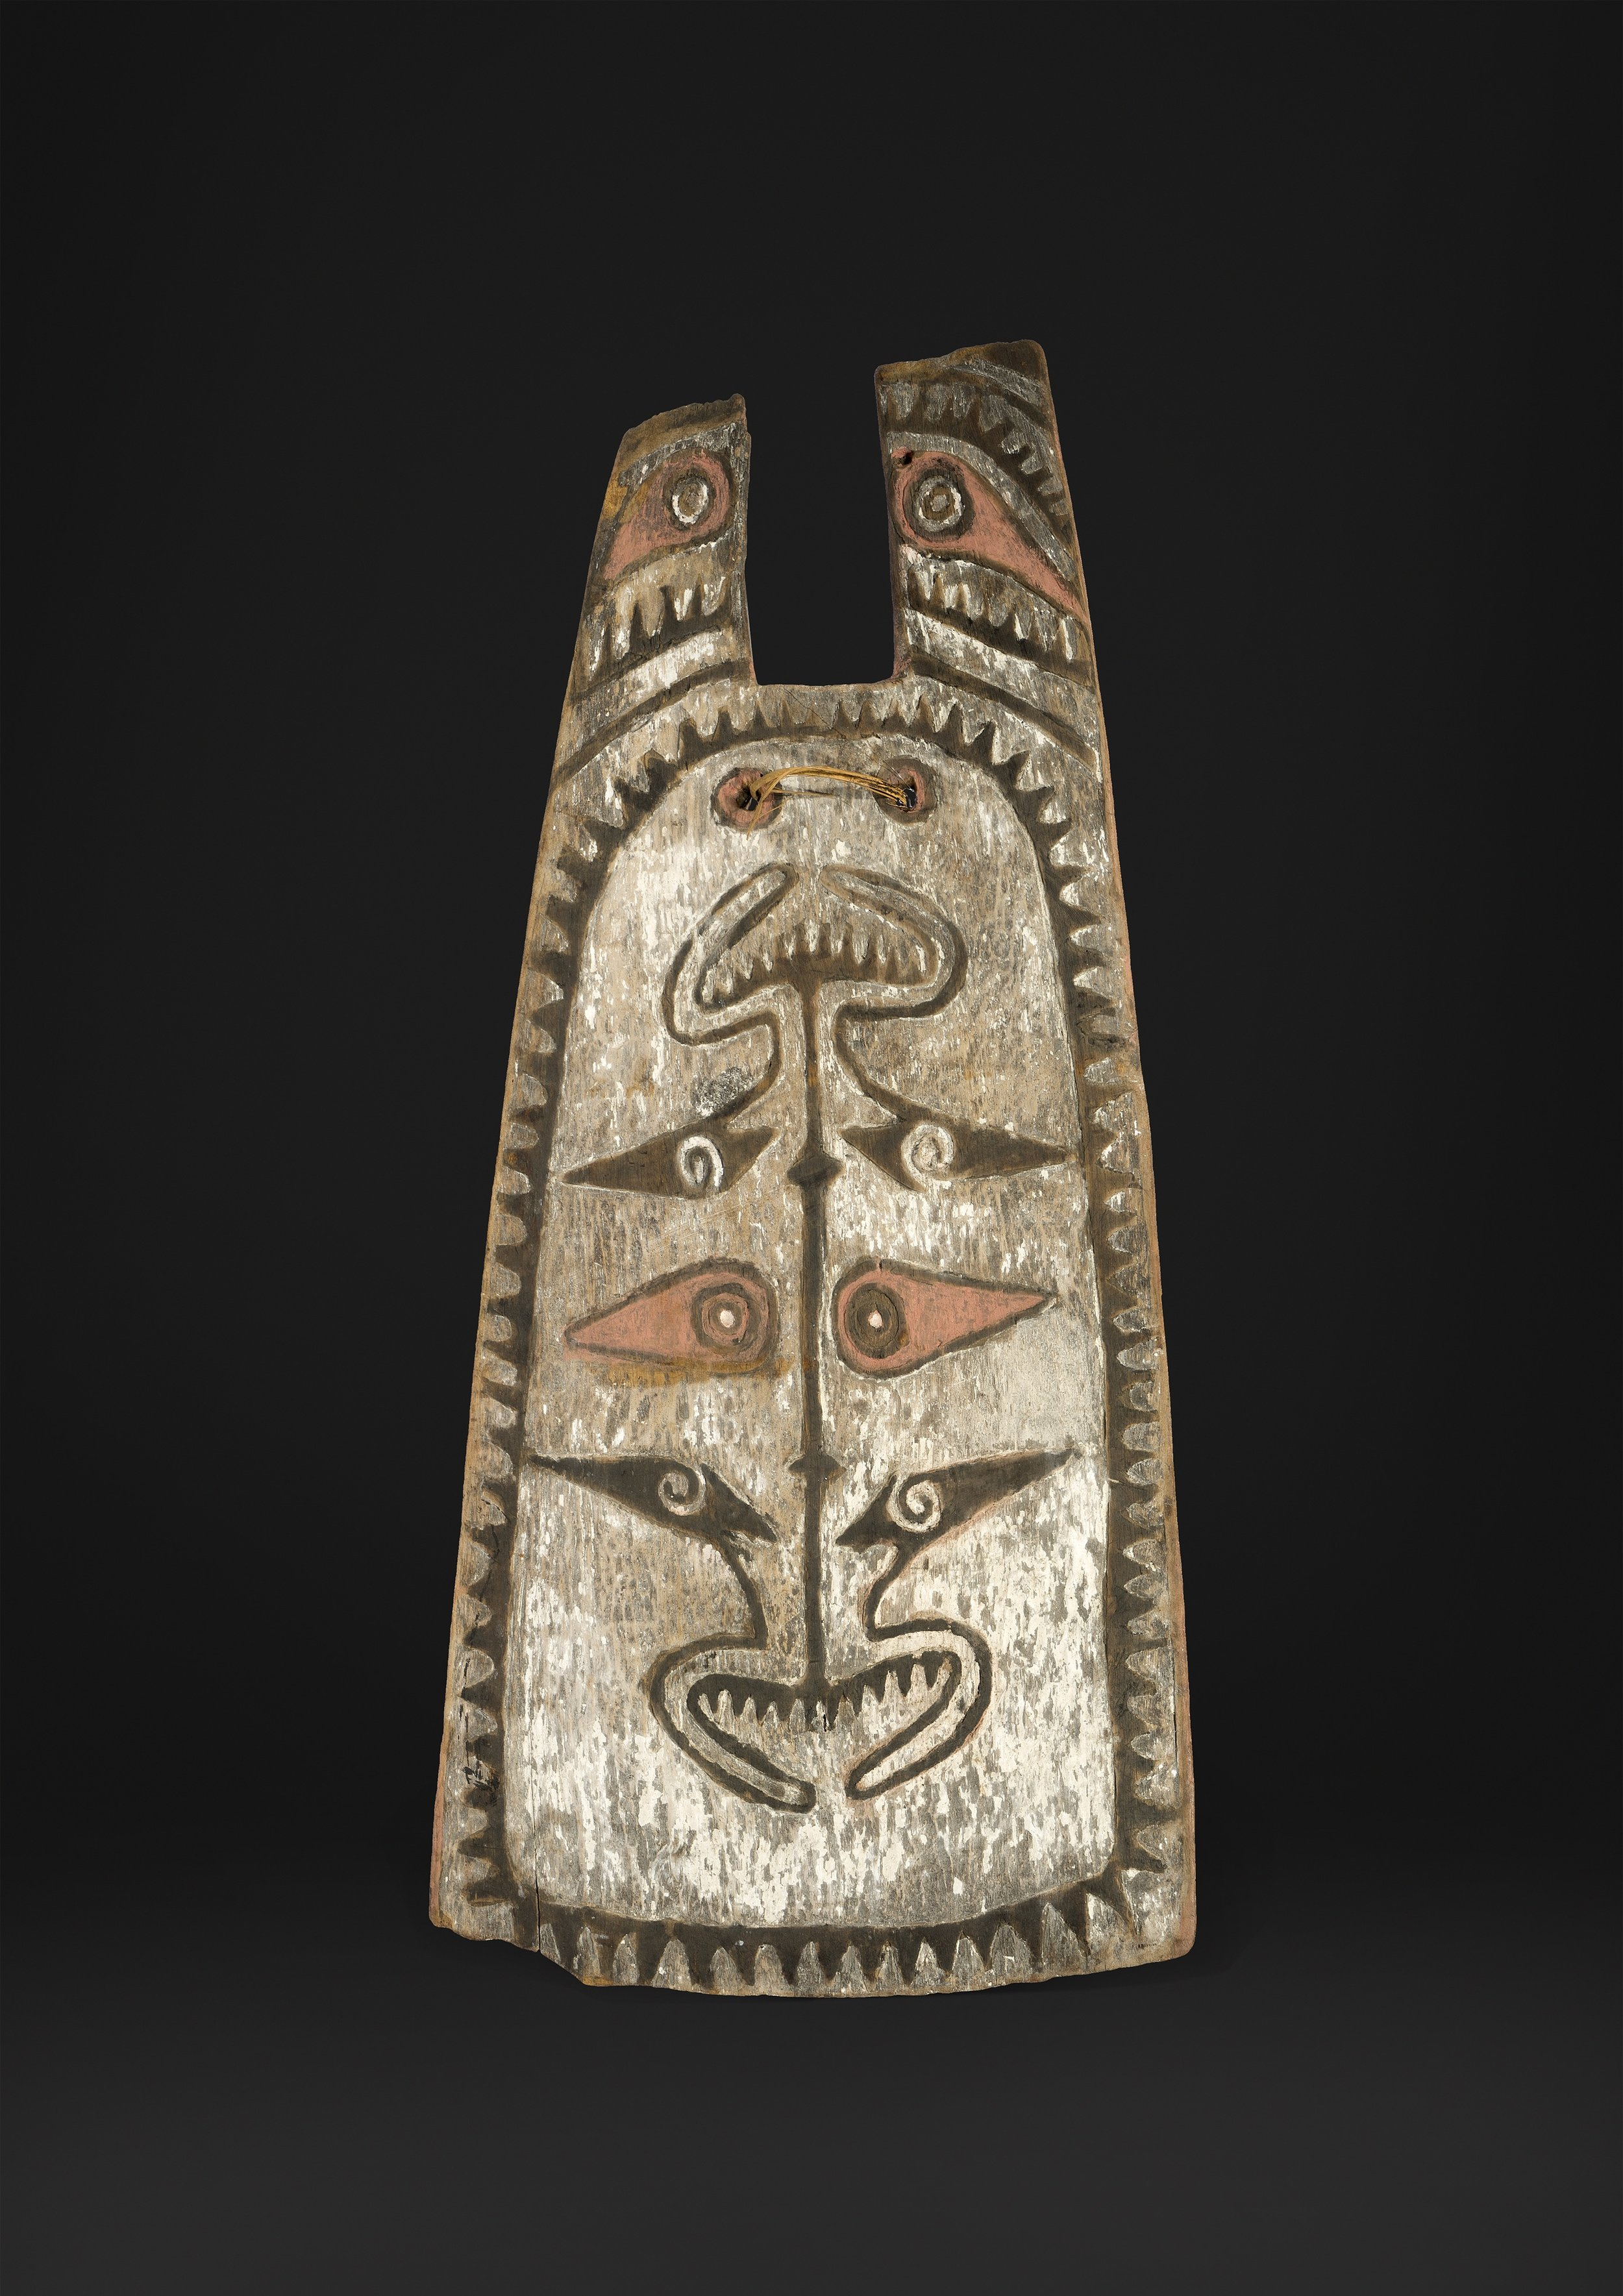 Elema people, Papuan Gulf, 19th century, inv. no. A.46688, South Australian Museum, Adelaide. Image courtesy of Bill Evans